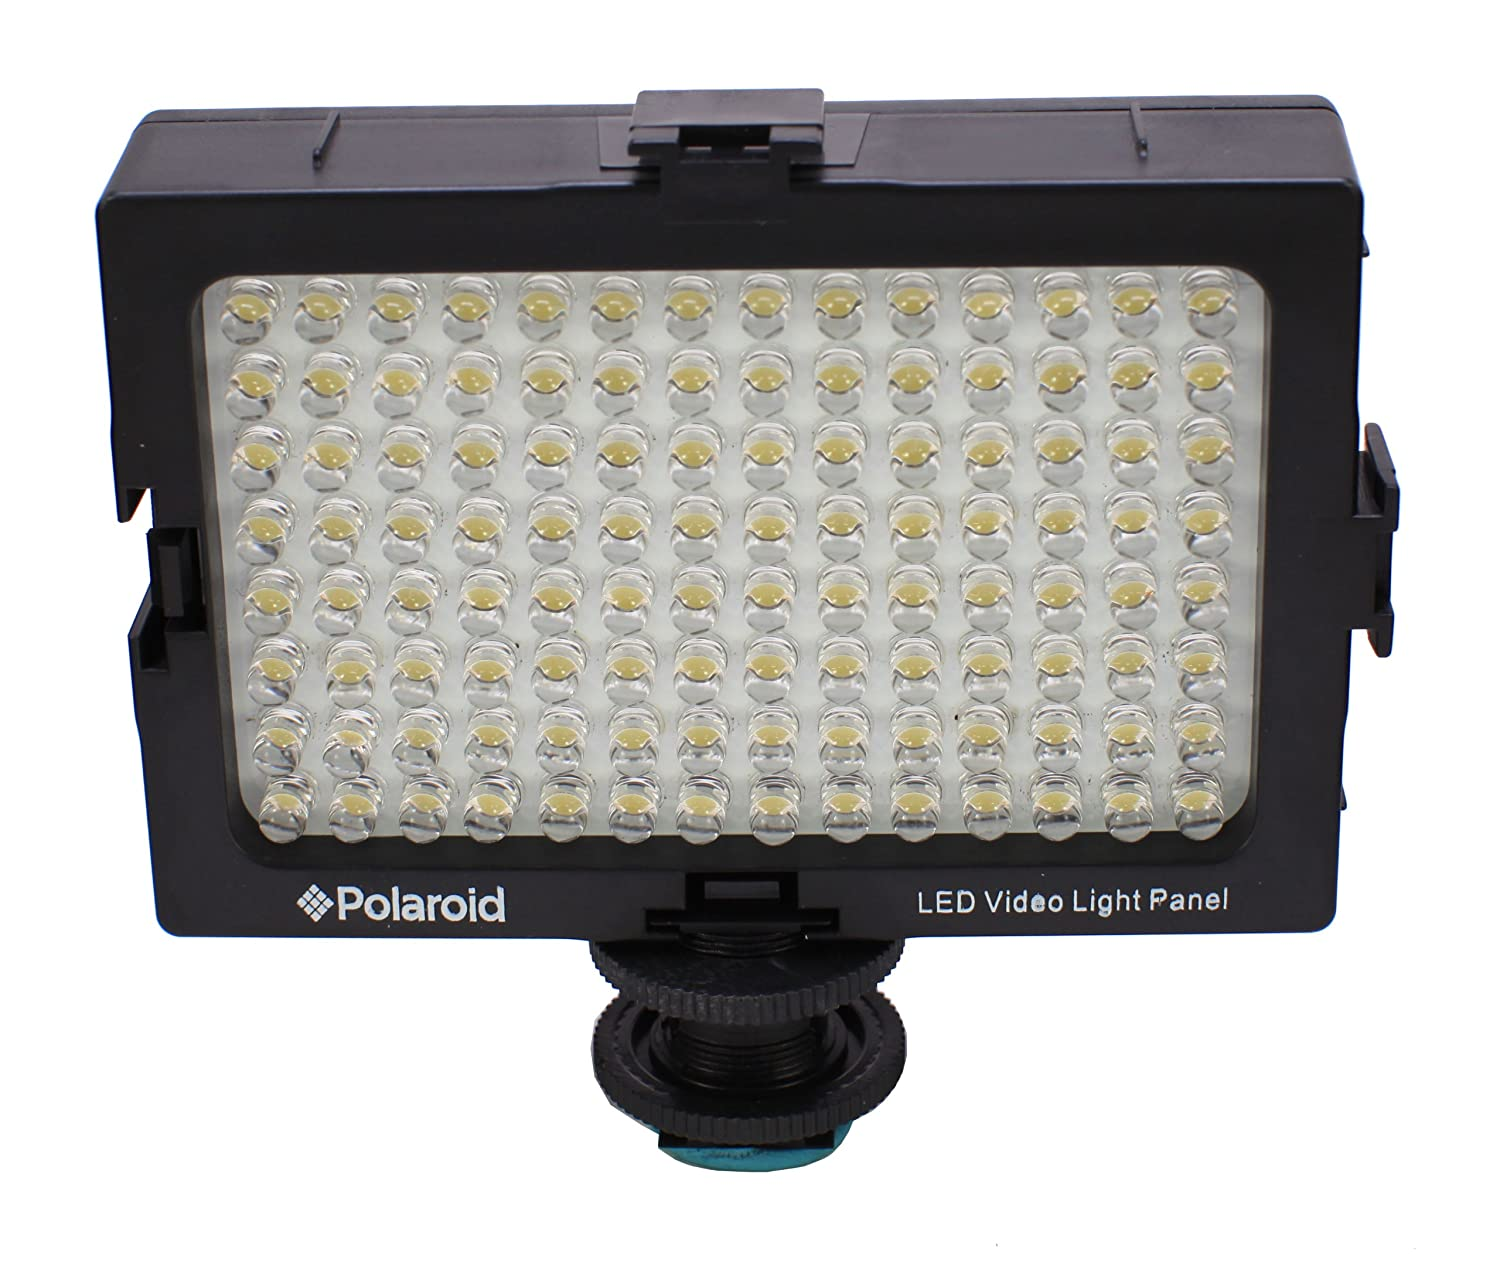 Polaroid Studio Series Plled54 Dimmable112 Led Video Light Panel Color Correcting Leds W Brightness Dimmer